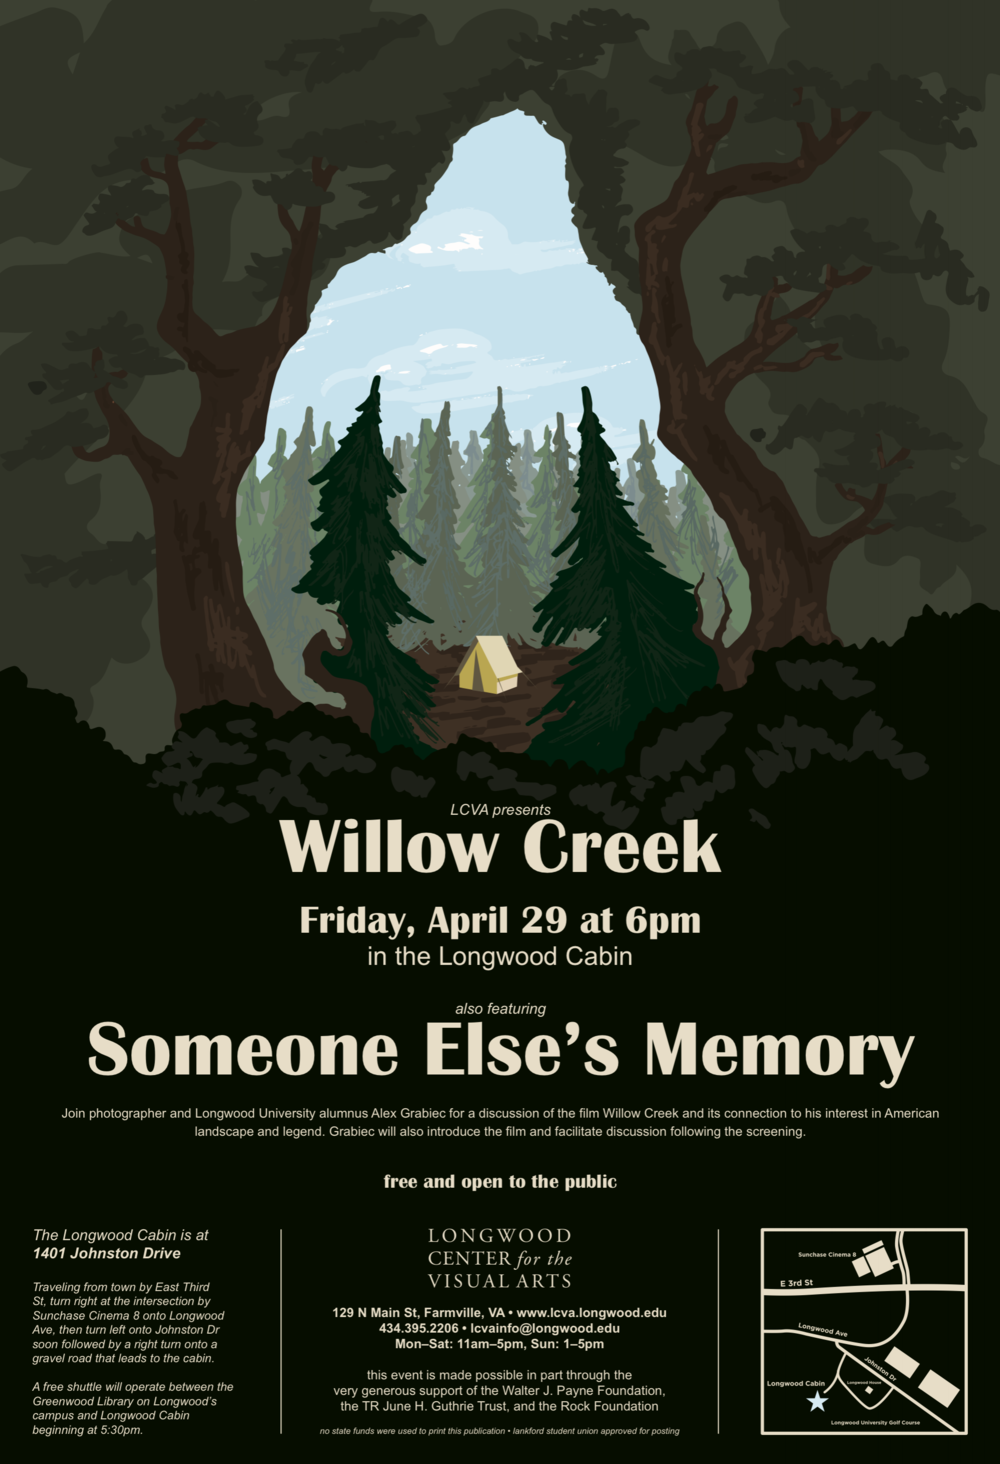 Willow Creek Screening